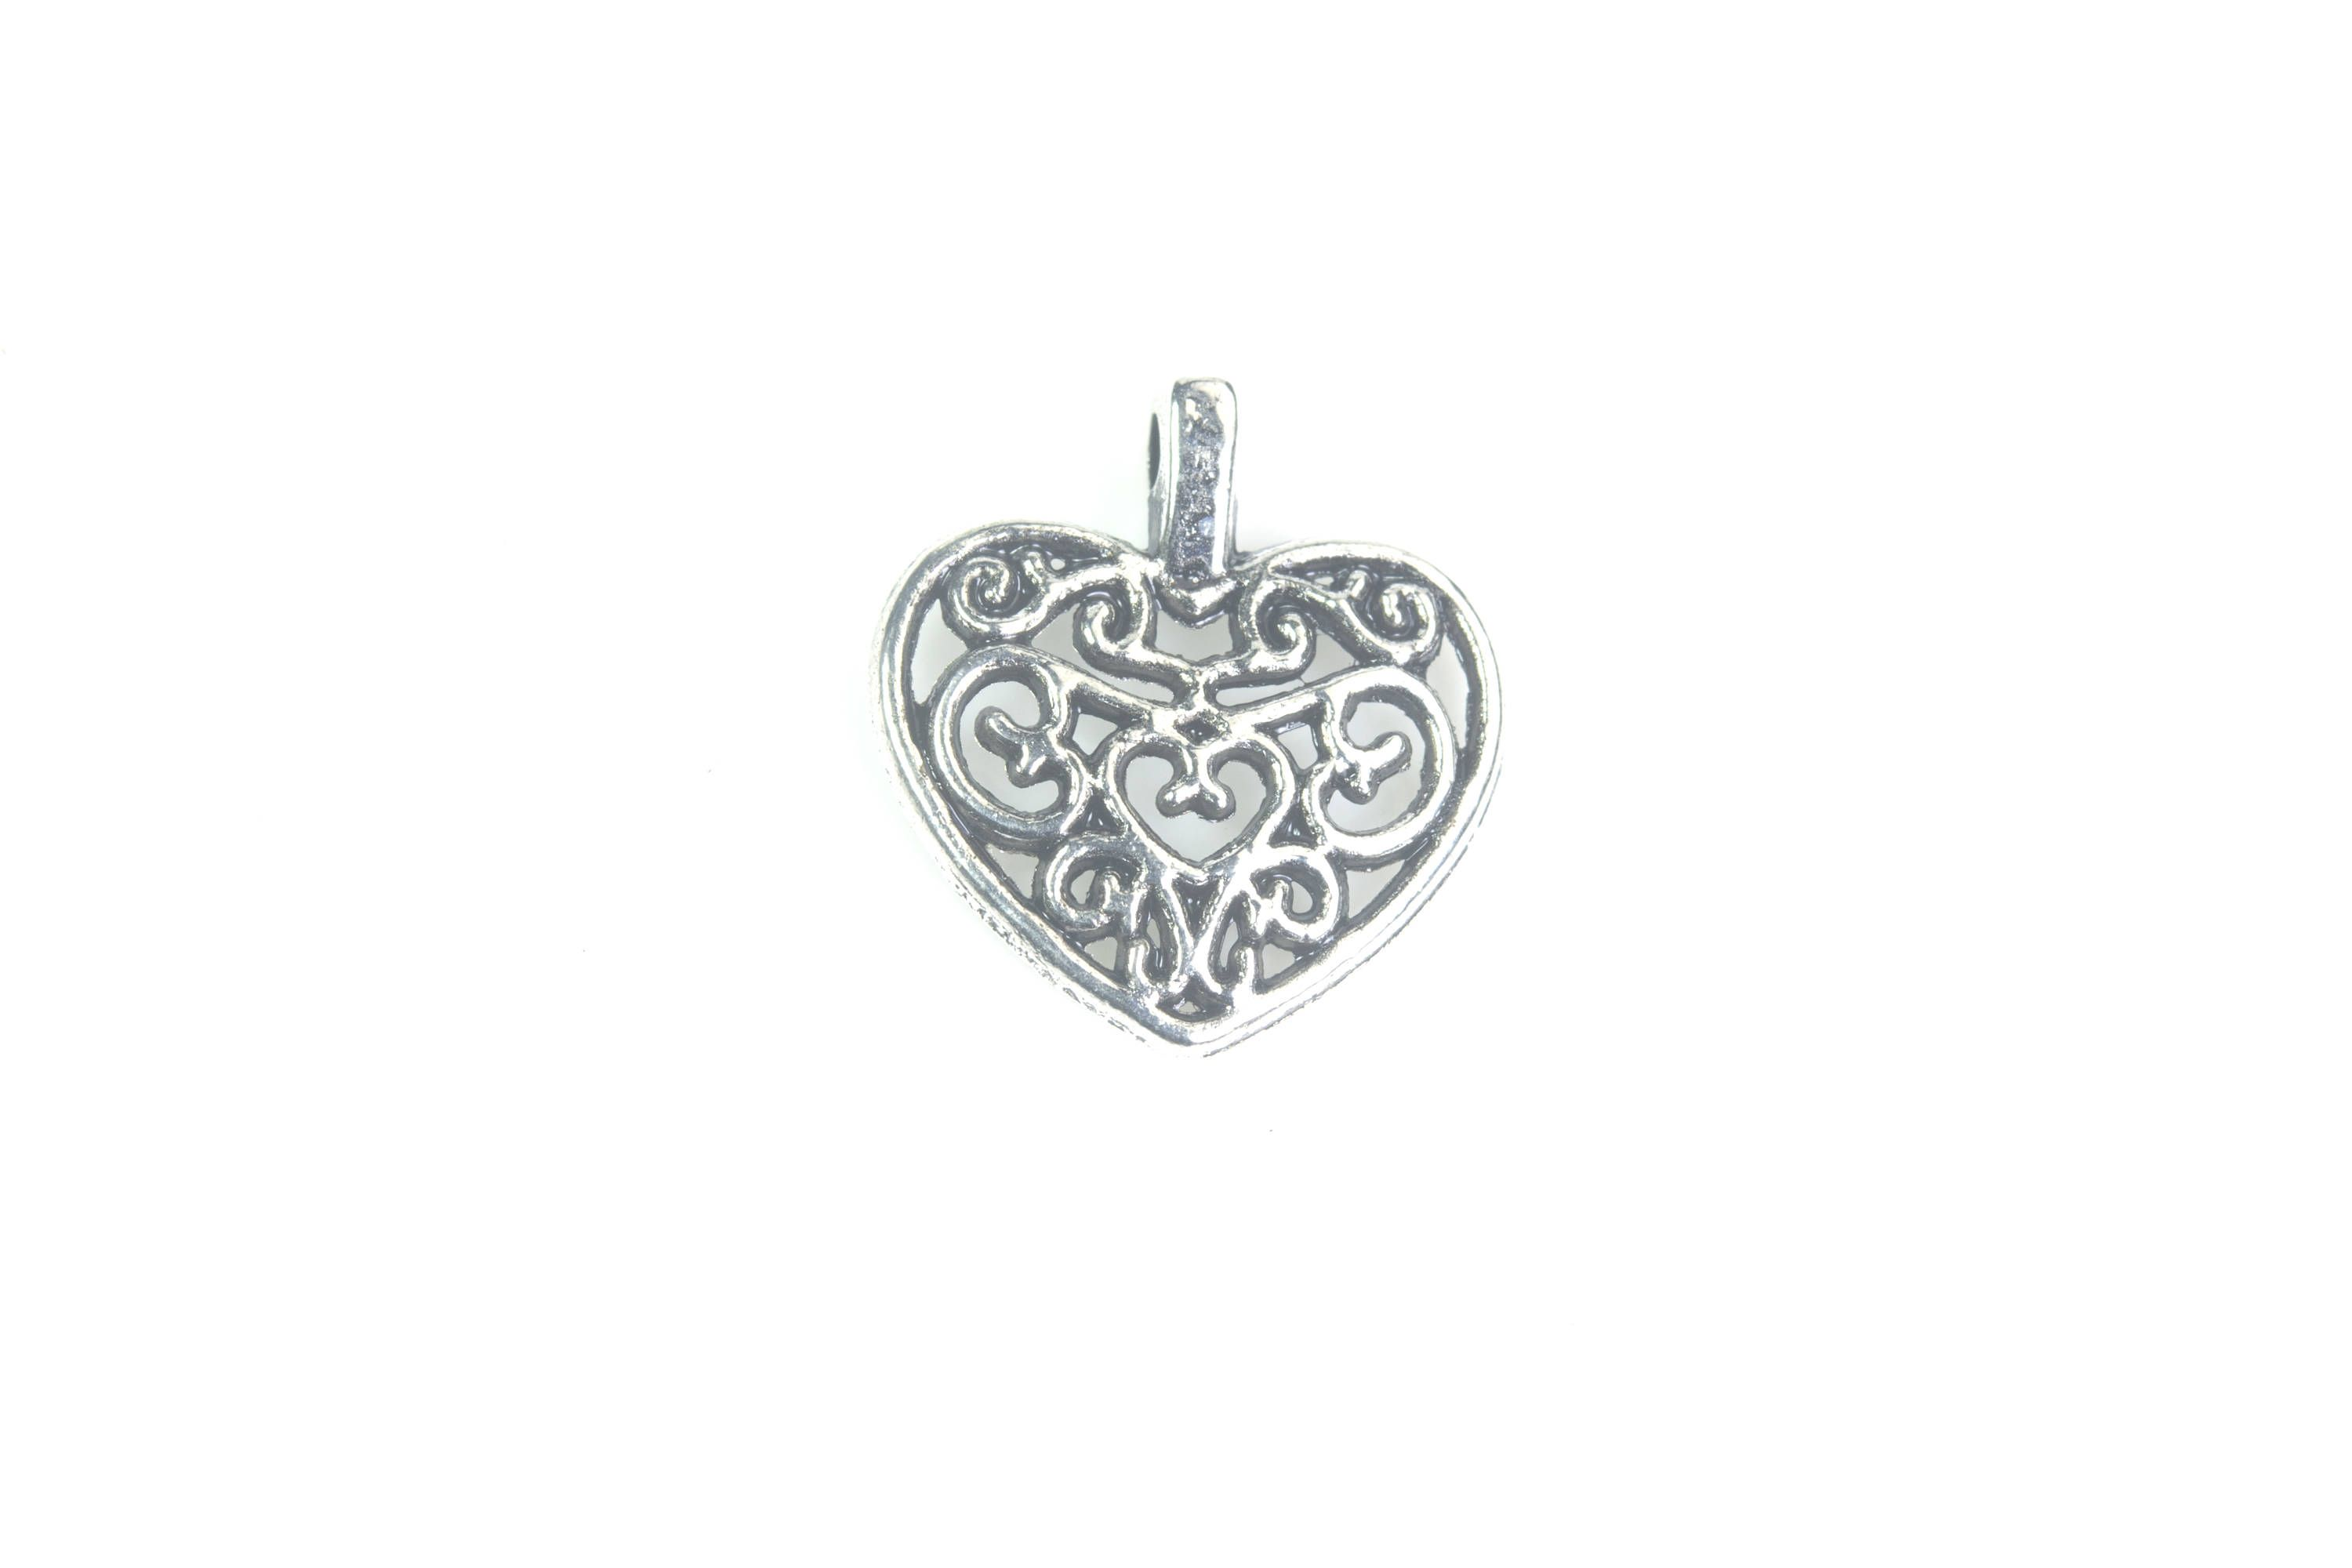 How to make a heart charm from beads